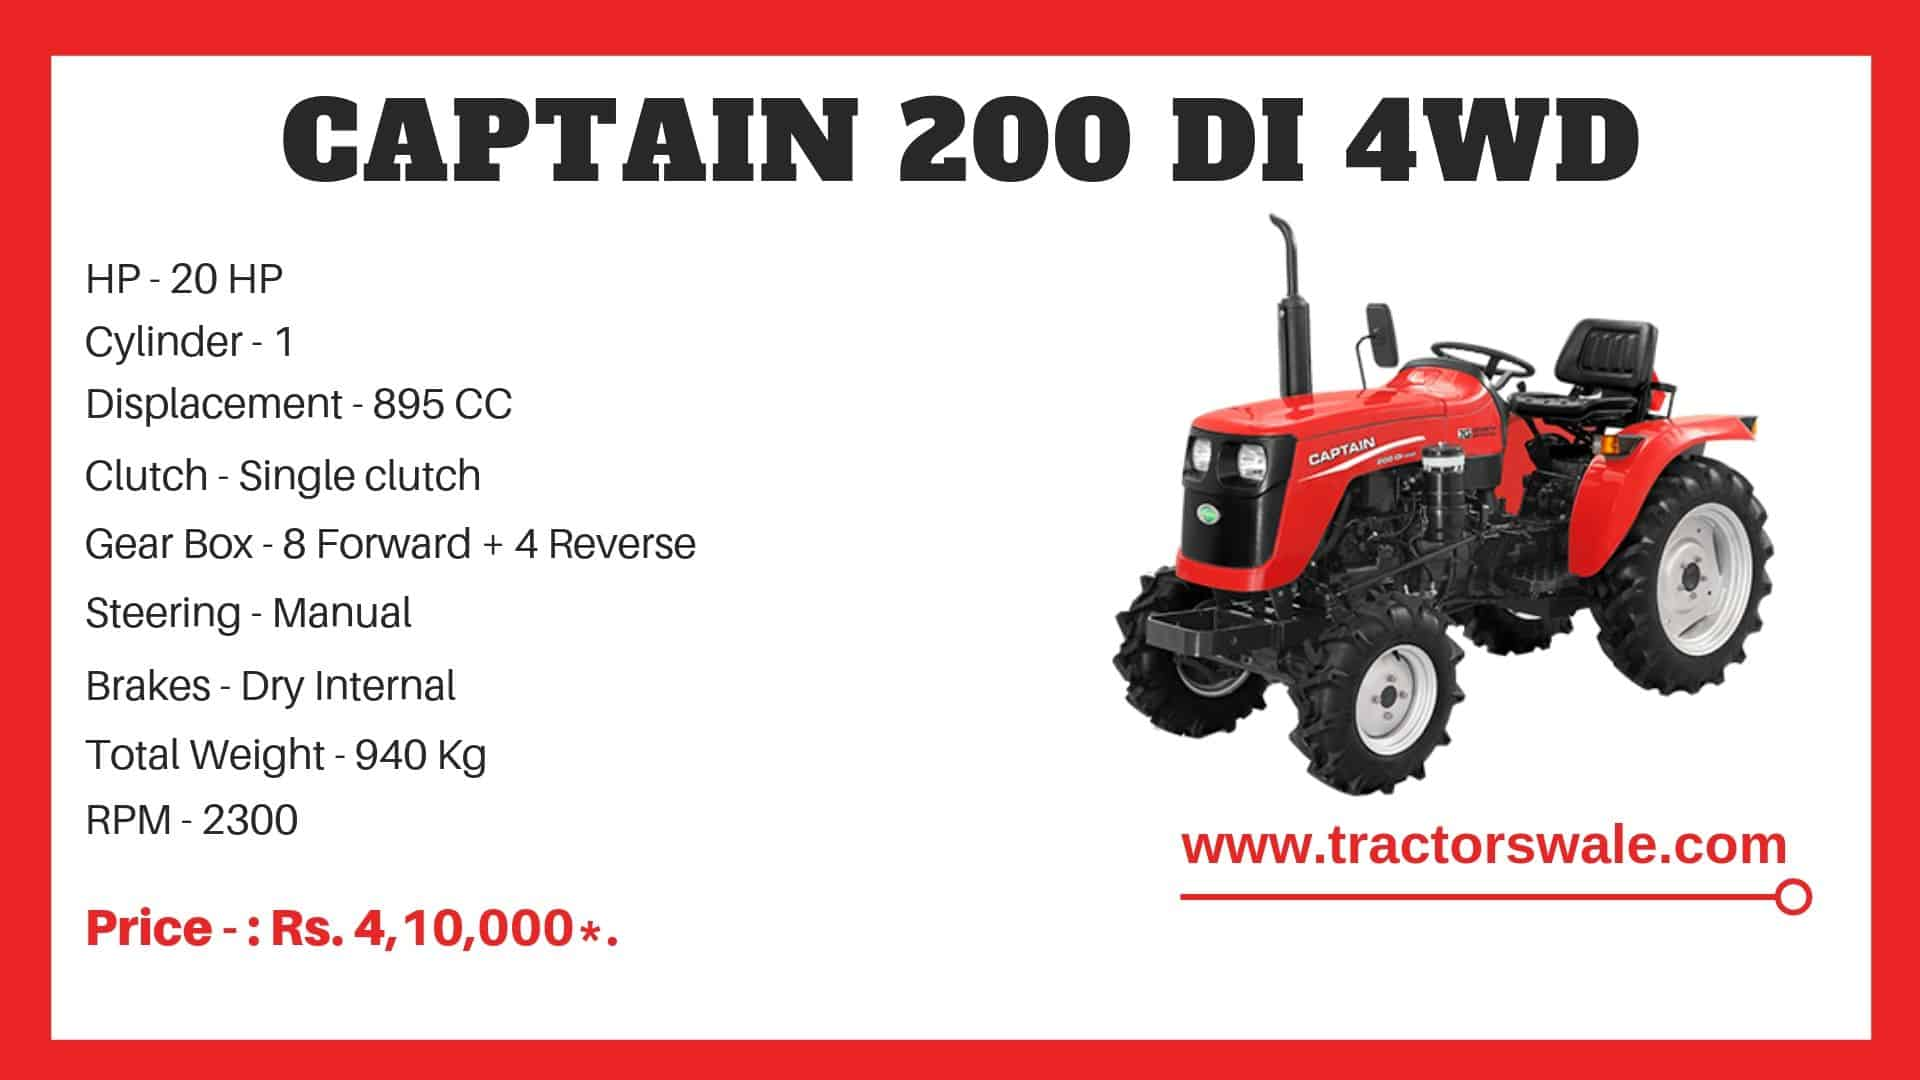 Specification of Captain 200 DI 4WD